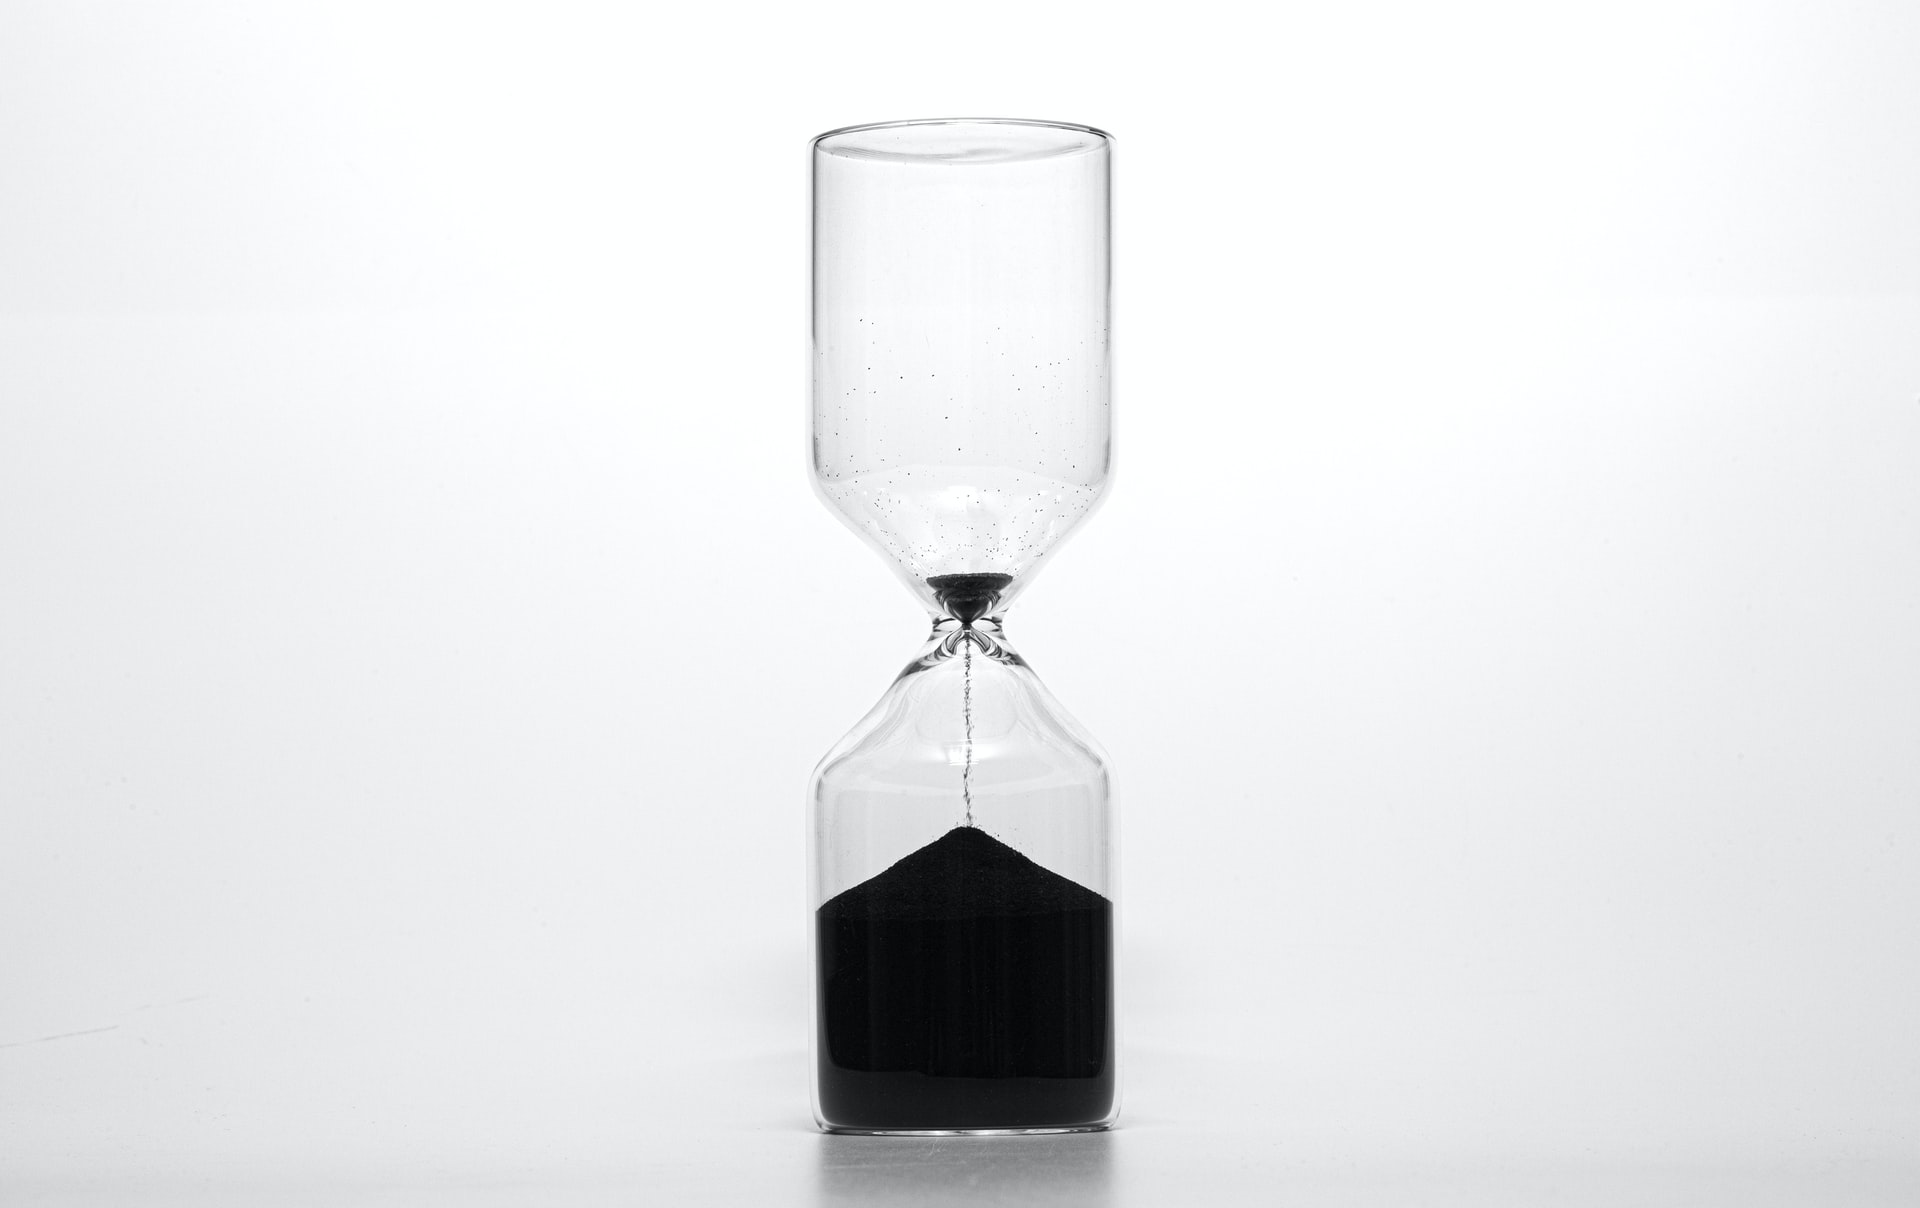 This image shows a sand timer on a white background. The sand is black creating a B&W contrast.